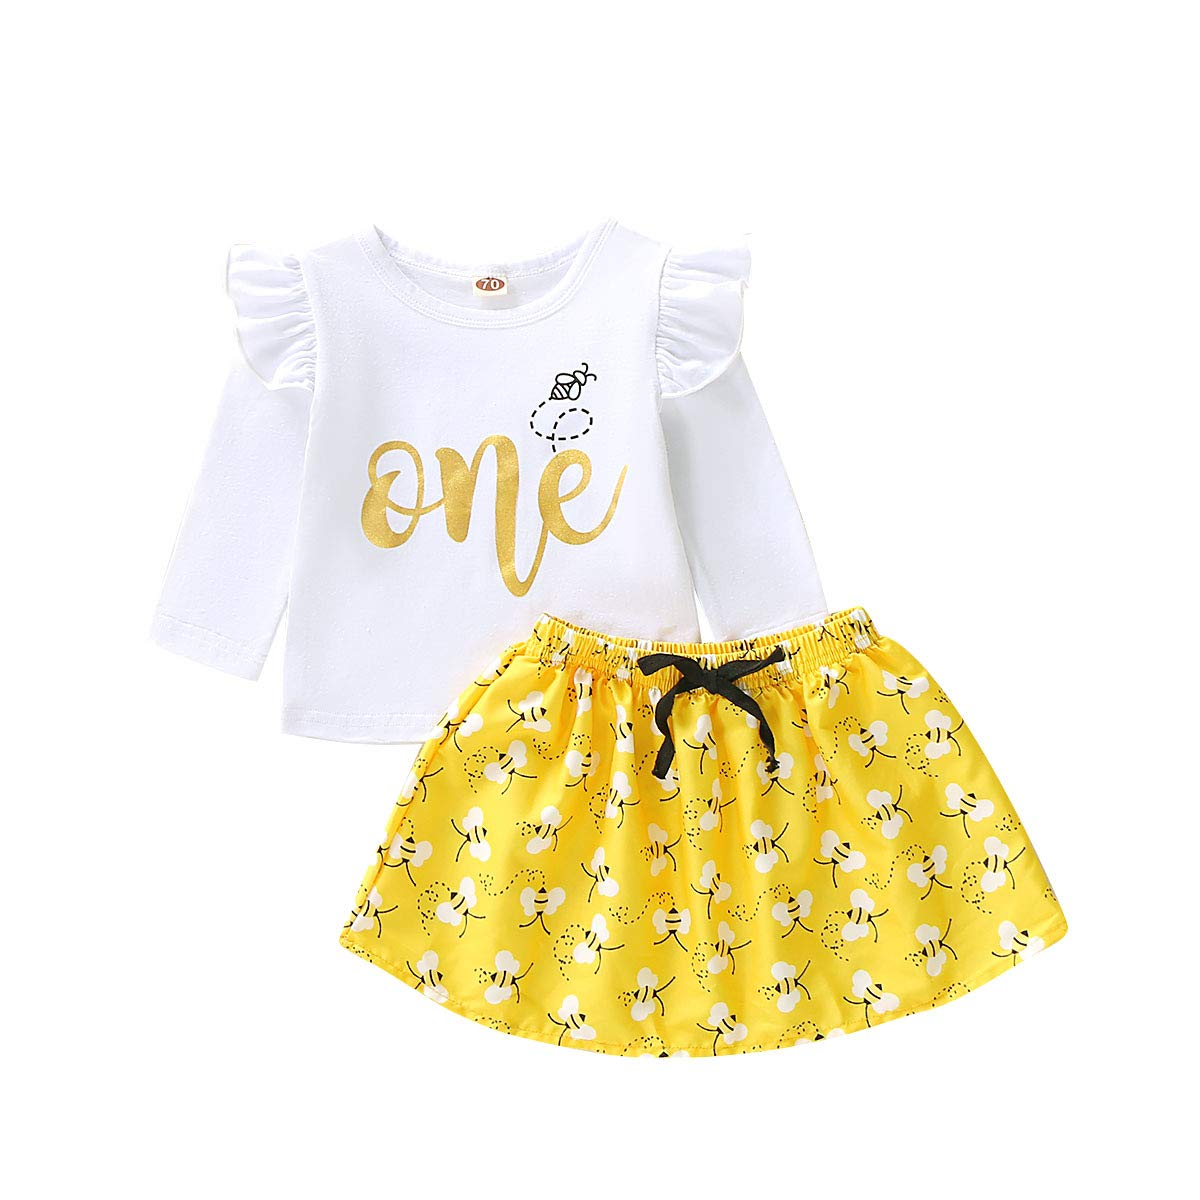 Newborn Infant Baby Clothes Girl 1st Birthday Tops One Bee Tutu Skirt Princess Party Dress Outfit